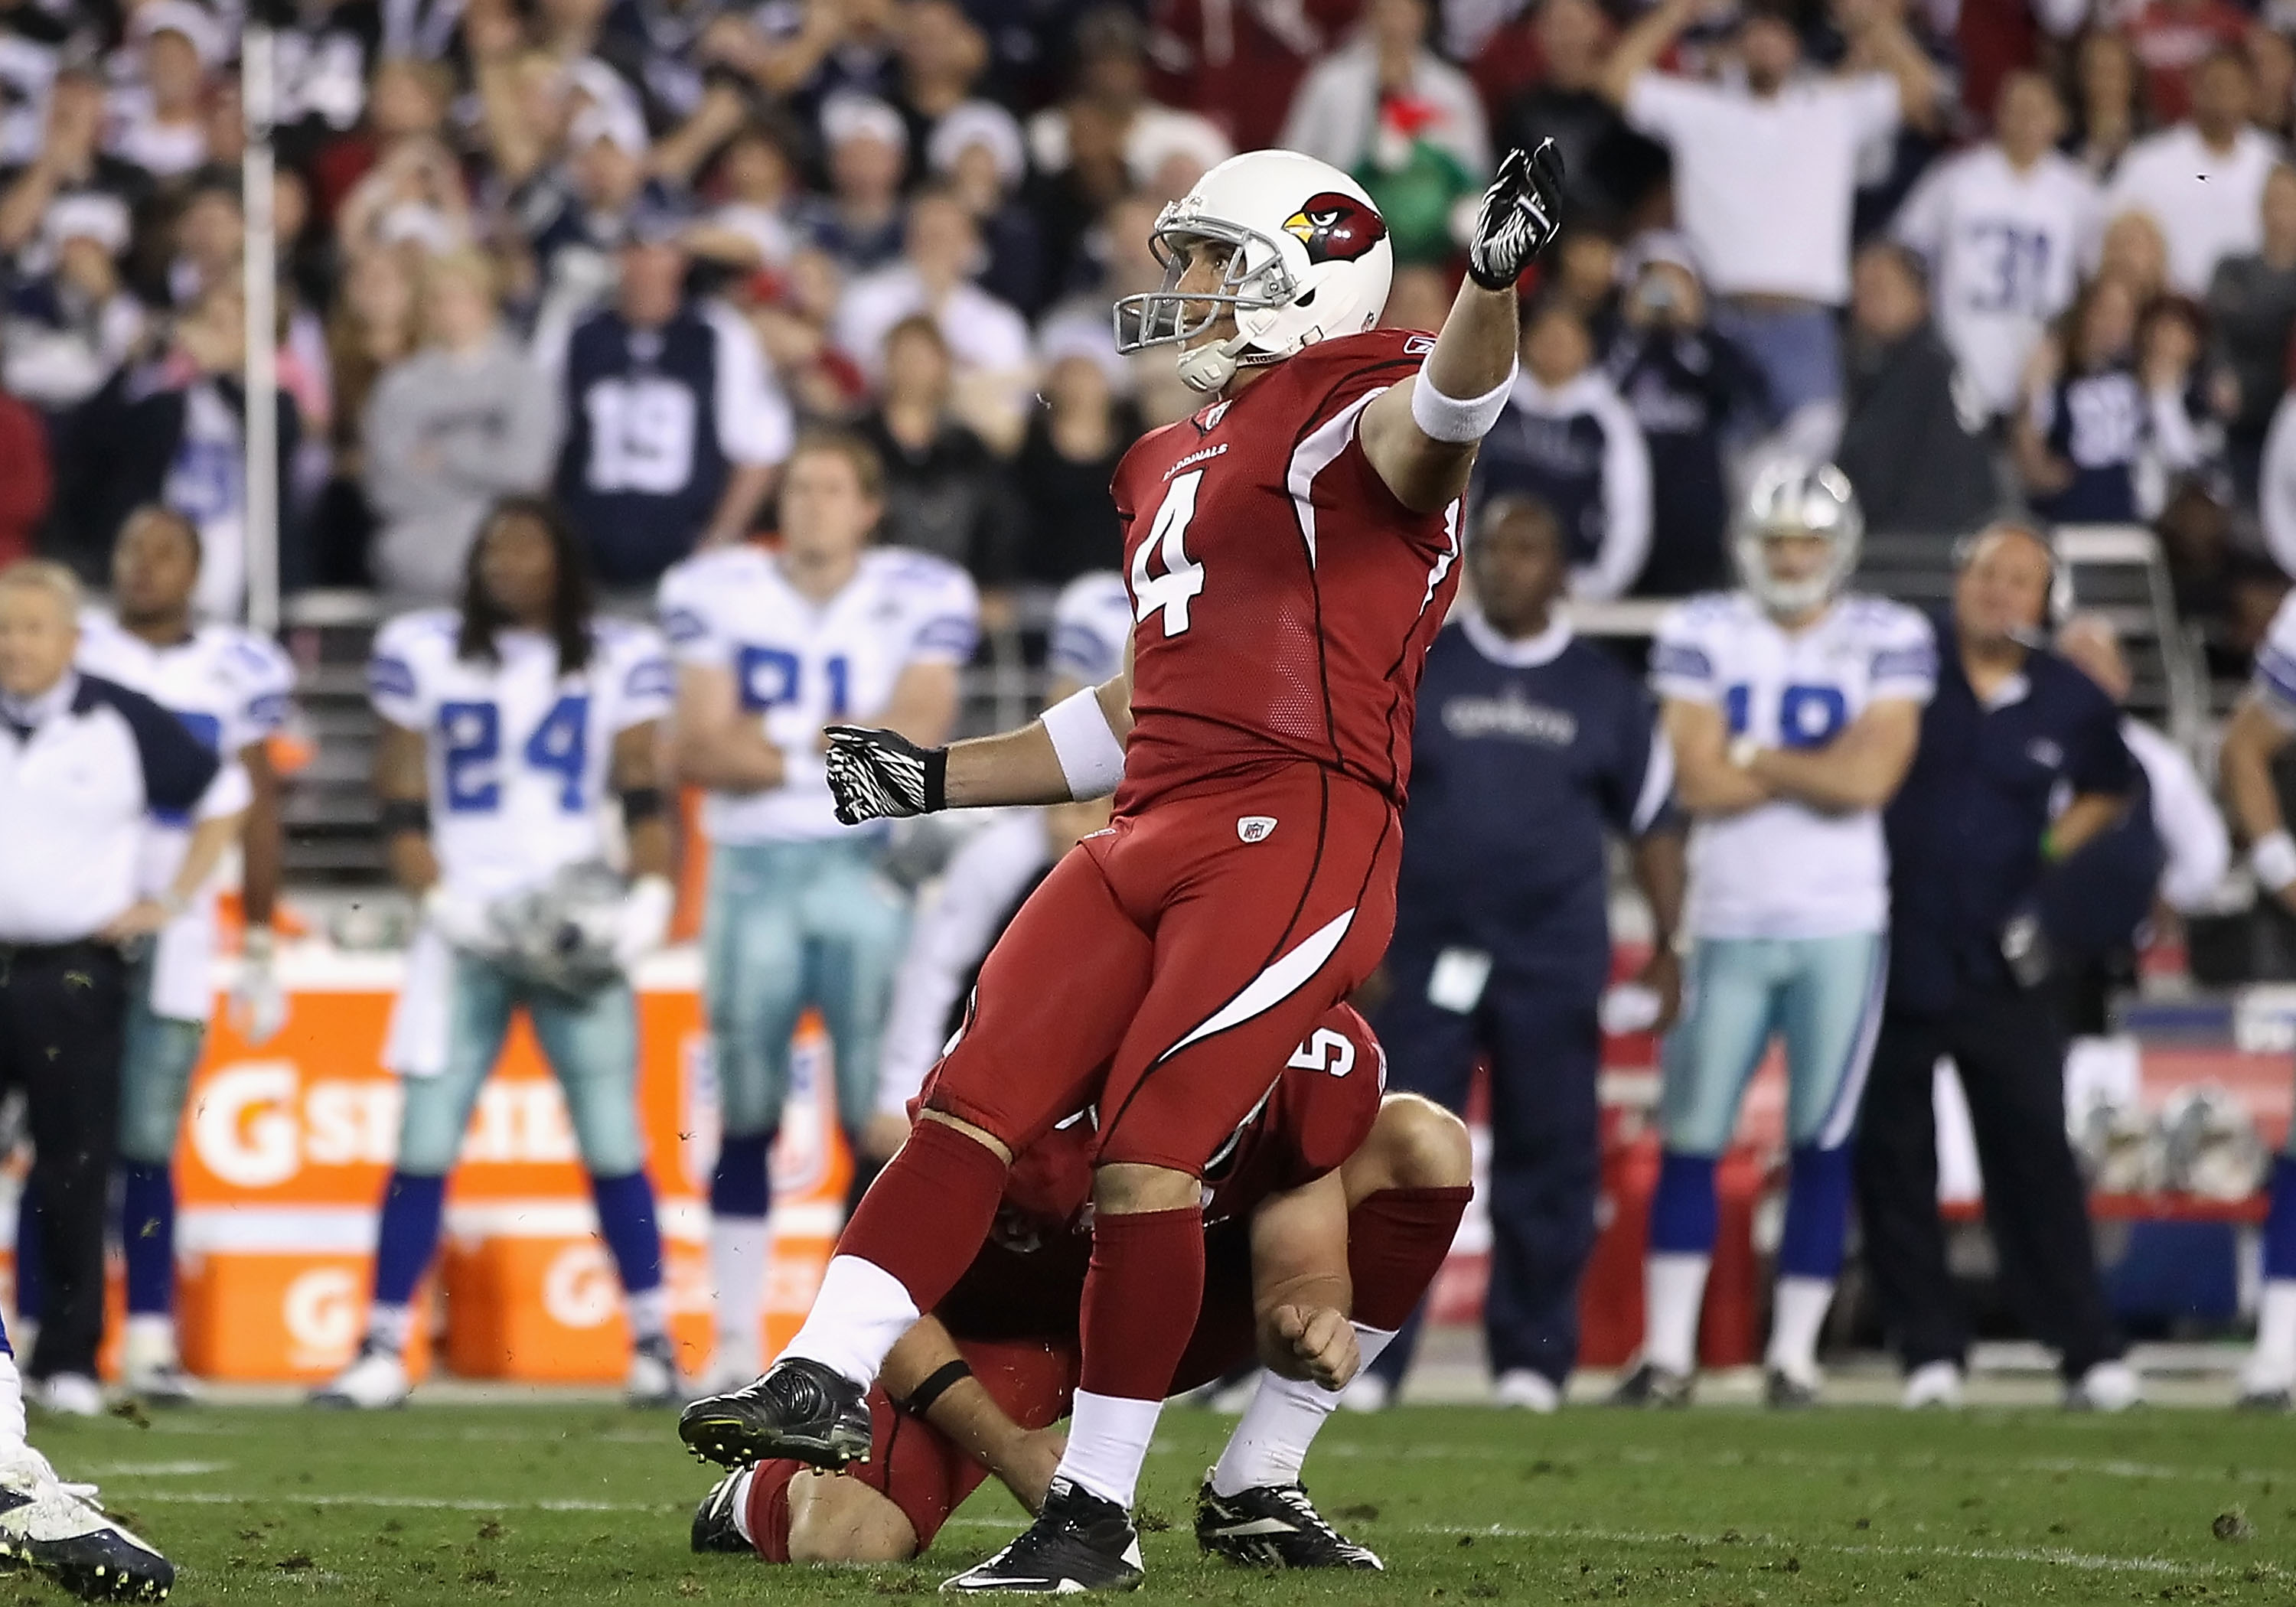 GLENDALE, AZ - DECEMBER 25:  Kicker Jay Feely #4 of the Arizona Cardinals kicks 48 yard field goal in the final moments of the NFL game against the Dallas Cowboys at the University of Phoenix Stadium on December 25, 2010 in Glendale, Arizona. The Cardinal